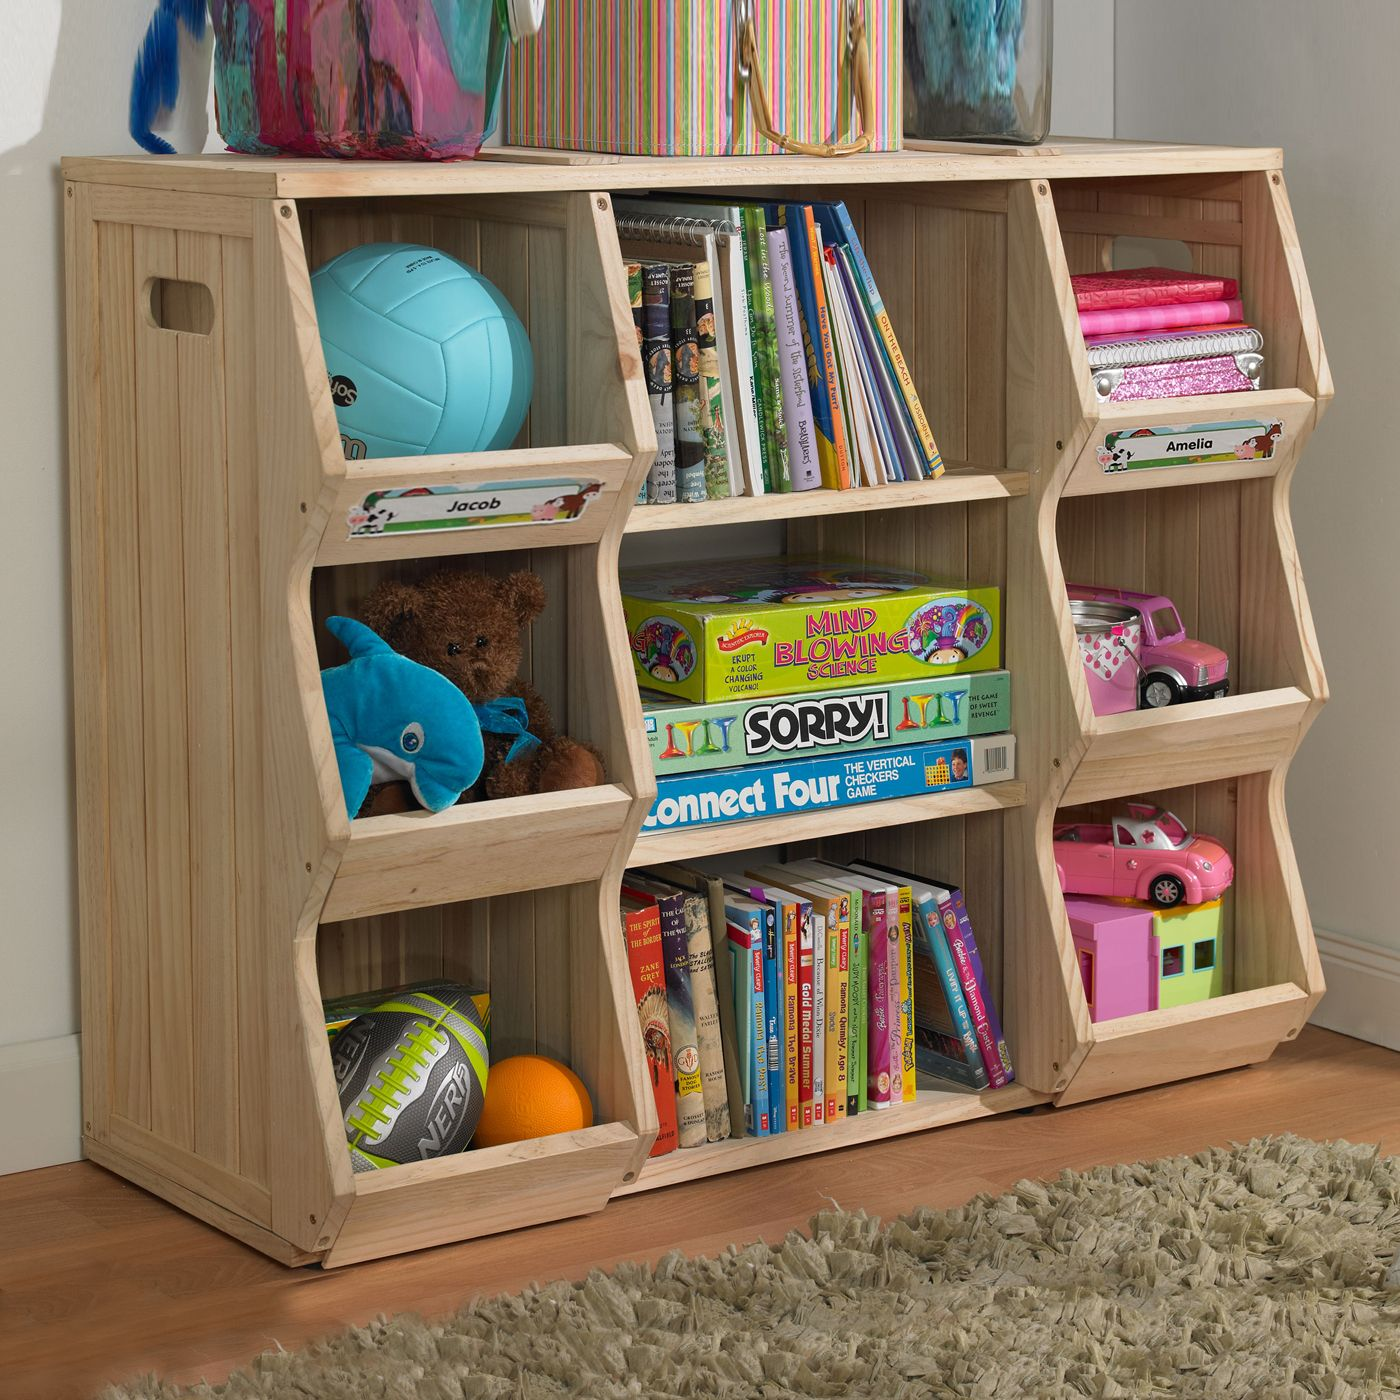 Bookshelf For Kids Room Merry Products Slf0031901910 Children 39s Bookshelf Cubby